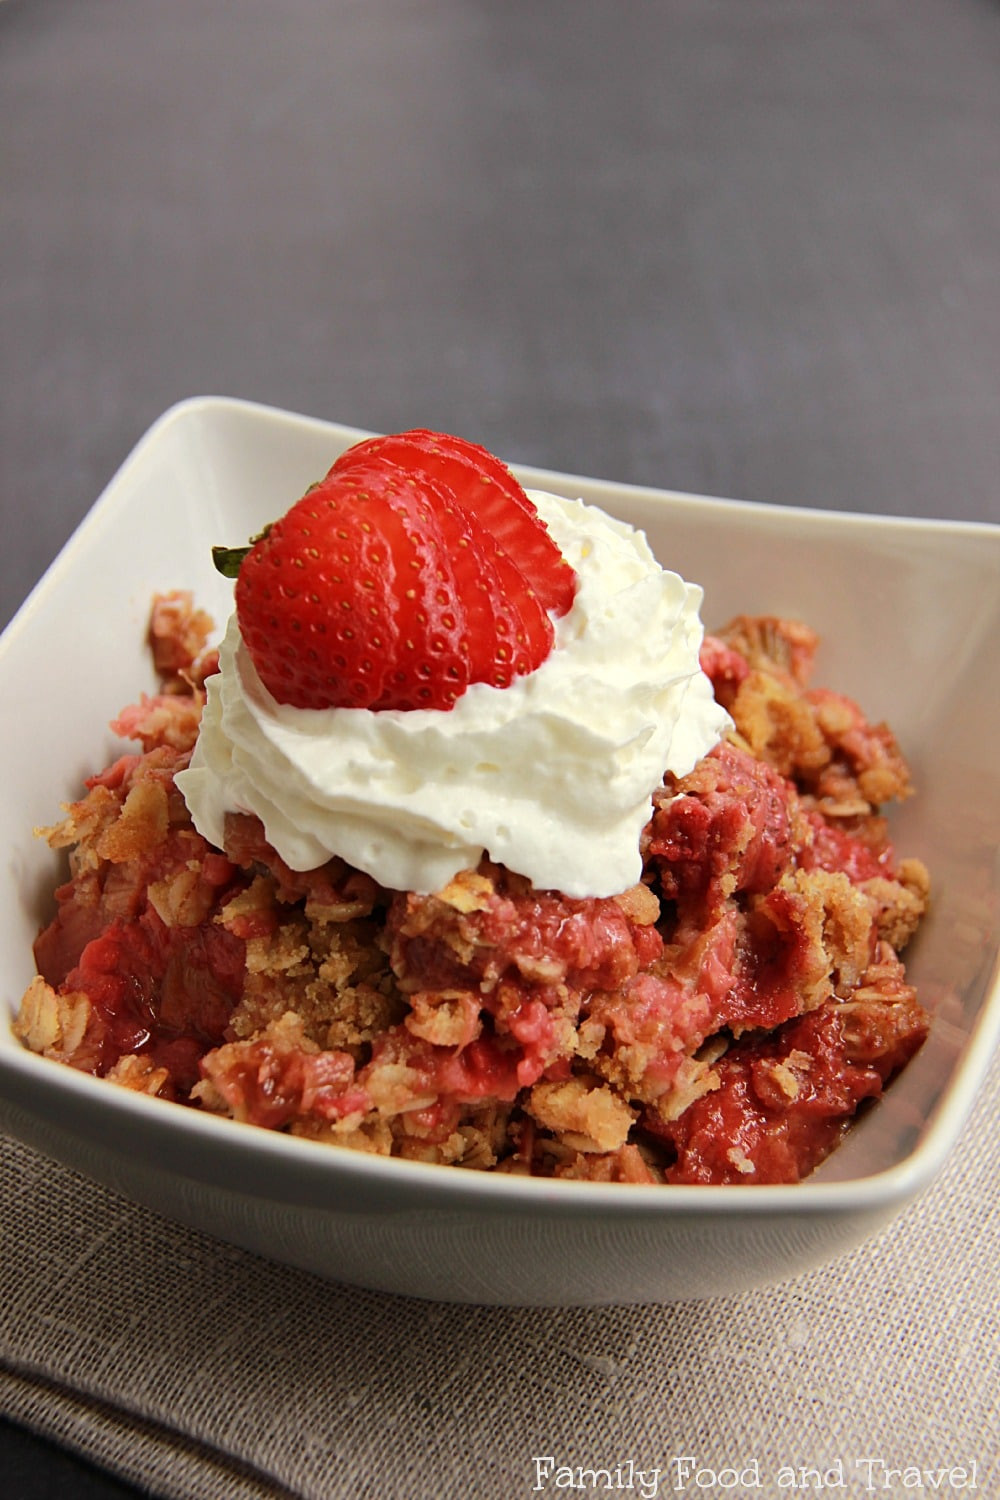 Strawberry Rubarb Dessert  Strawberry Rhubarb Crisp Family Food And Travel